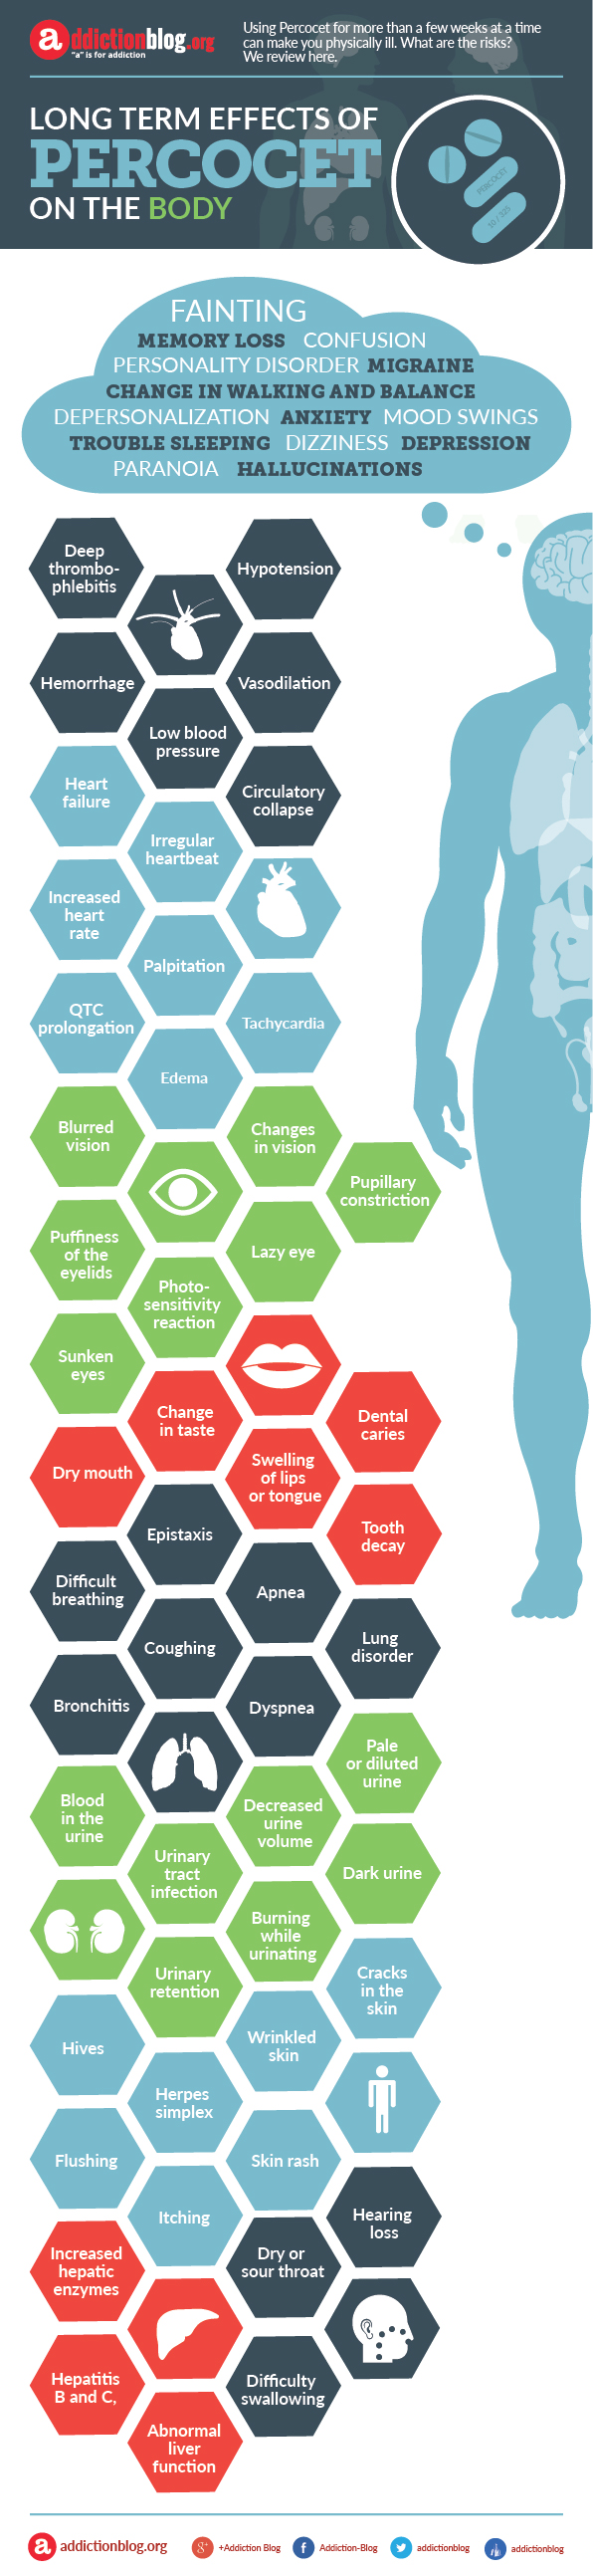 Long term physical effects of Percocet on the body (INFOGRAPHIC)